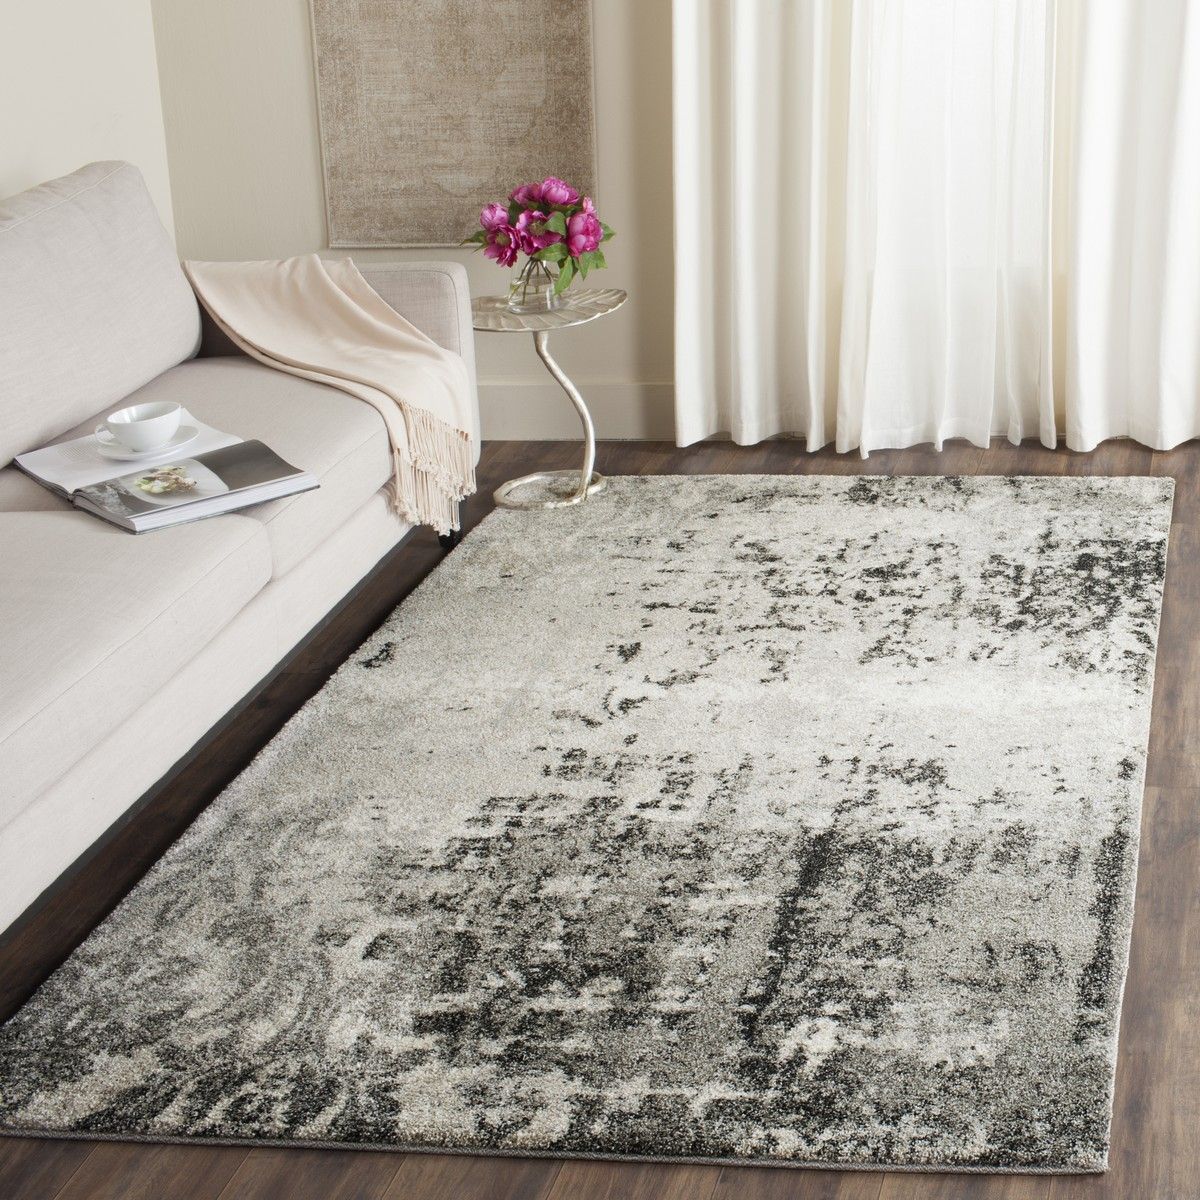 Retro Rugs Grey 1960 S Styled Rug Safavieh Com